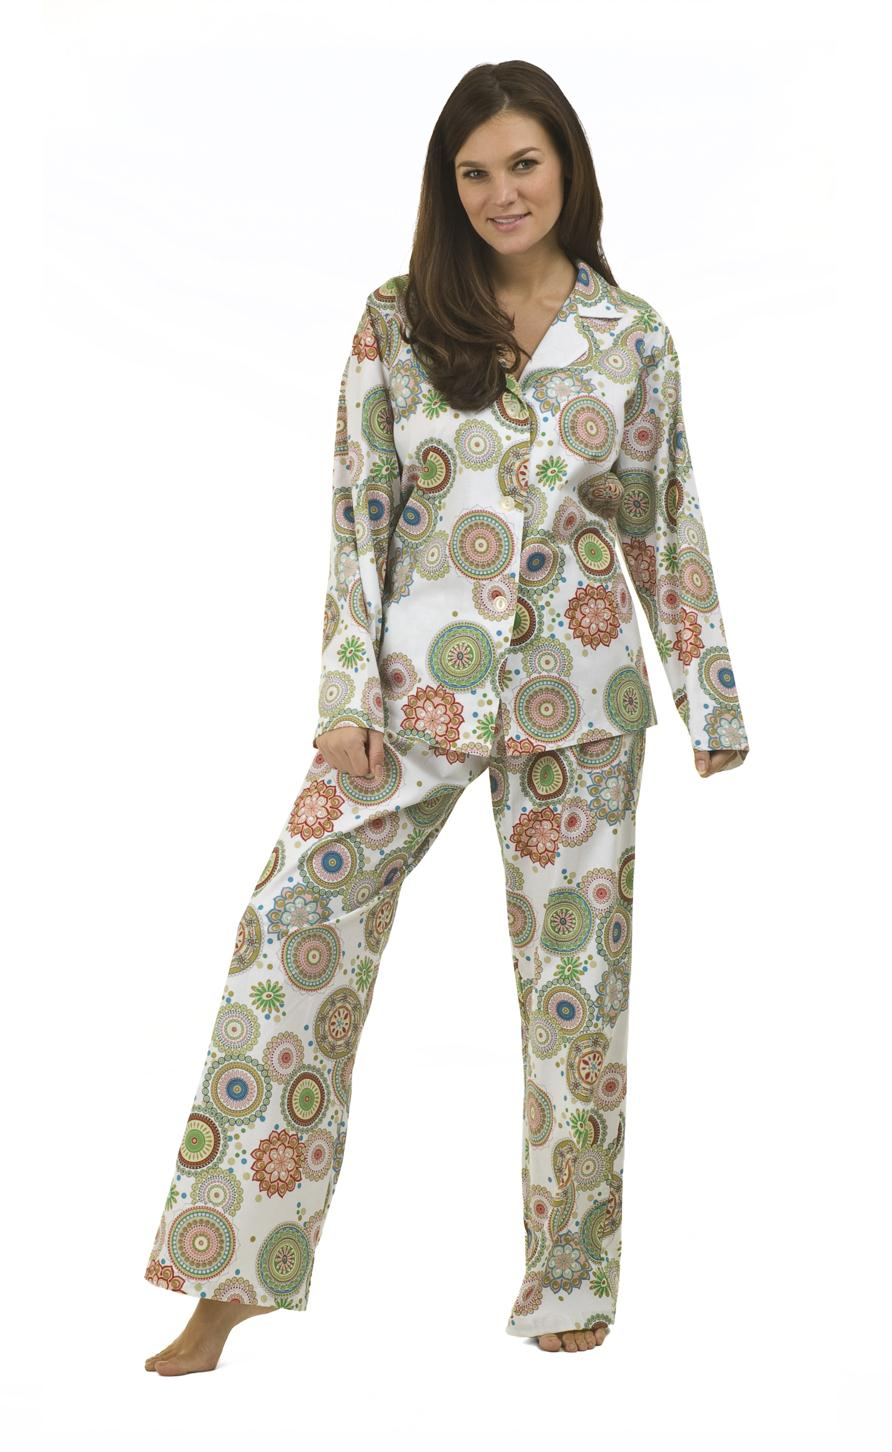 Winter Sleepwear Pajama Shirt For Women – Night Dress ...